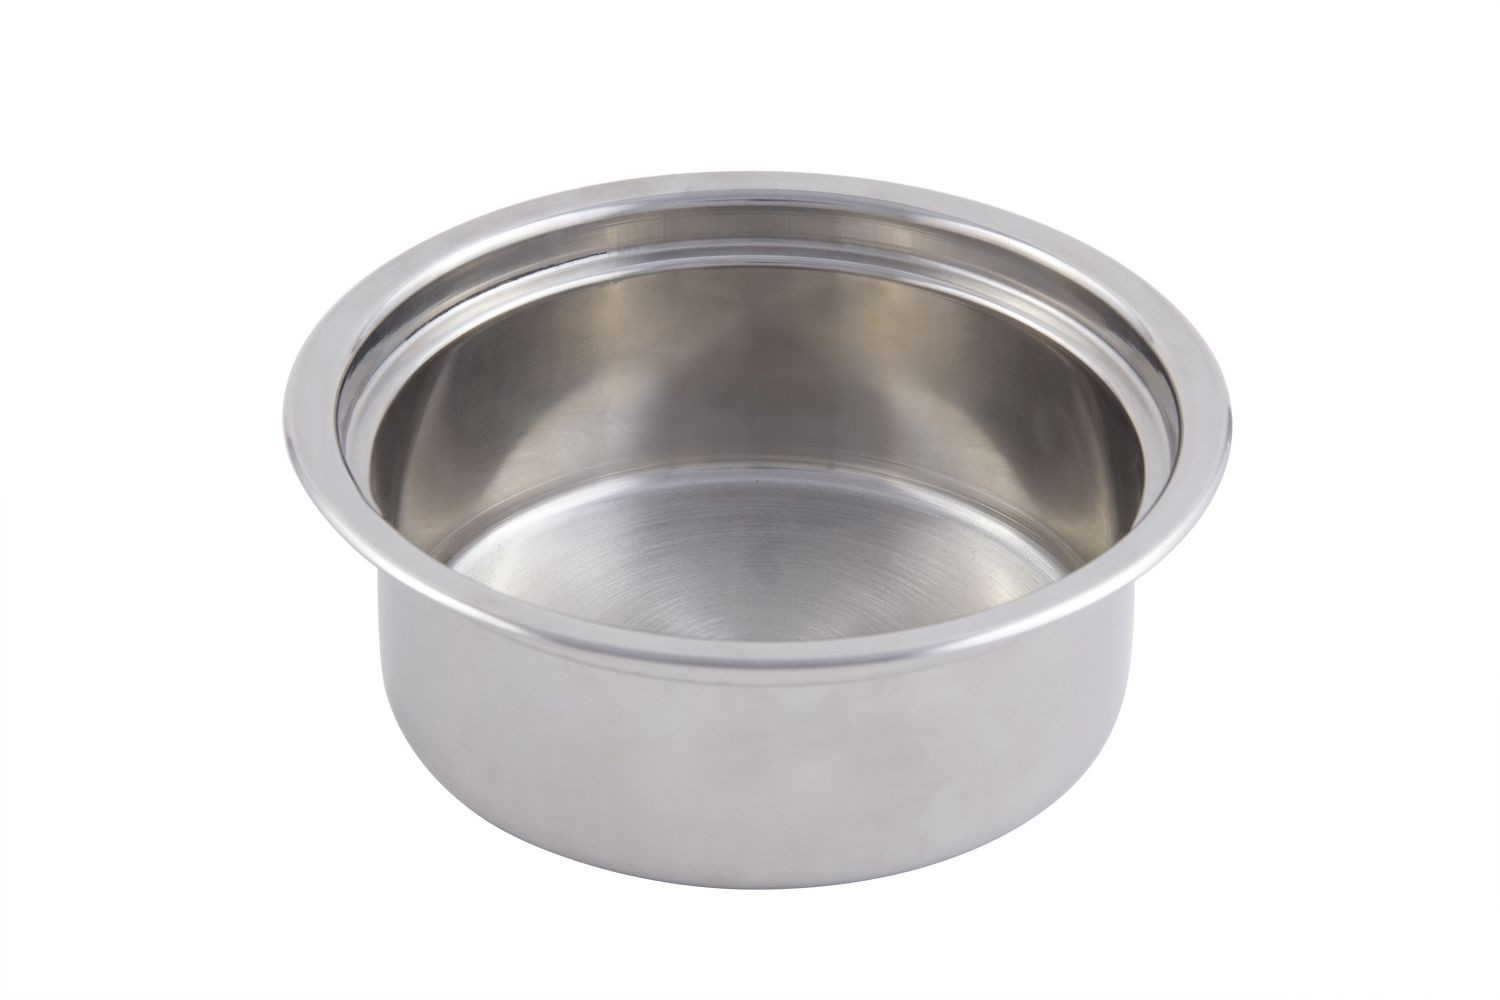 Bon Chef 60301i Insert Pan for Country French Pot, 2 Qt. 8 oz.